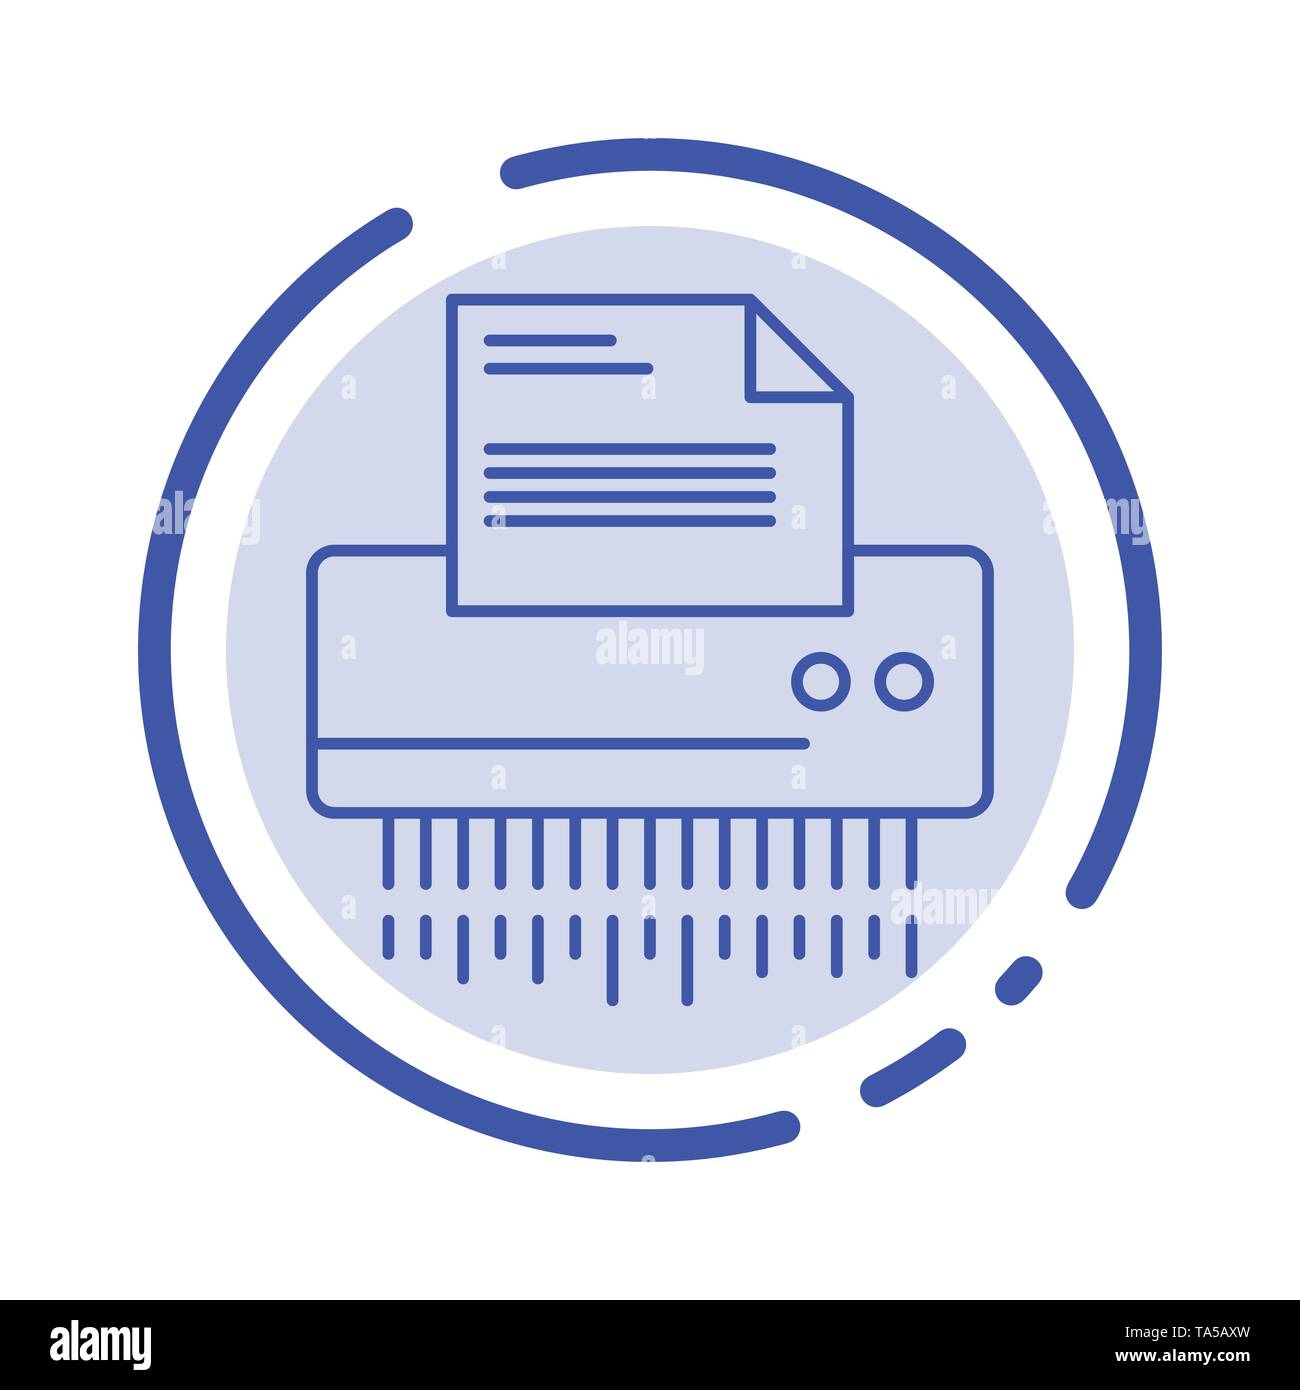 Shredder, Confidential, Data, File, Information, Office, Paper Blue Dotted Line Line Icon - Stock Vector